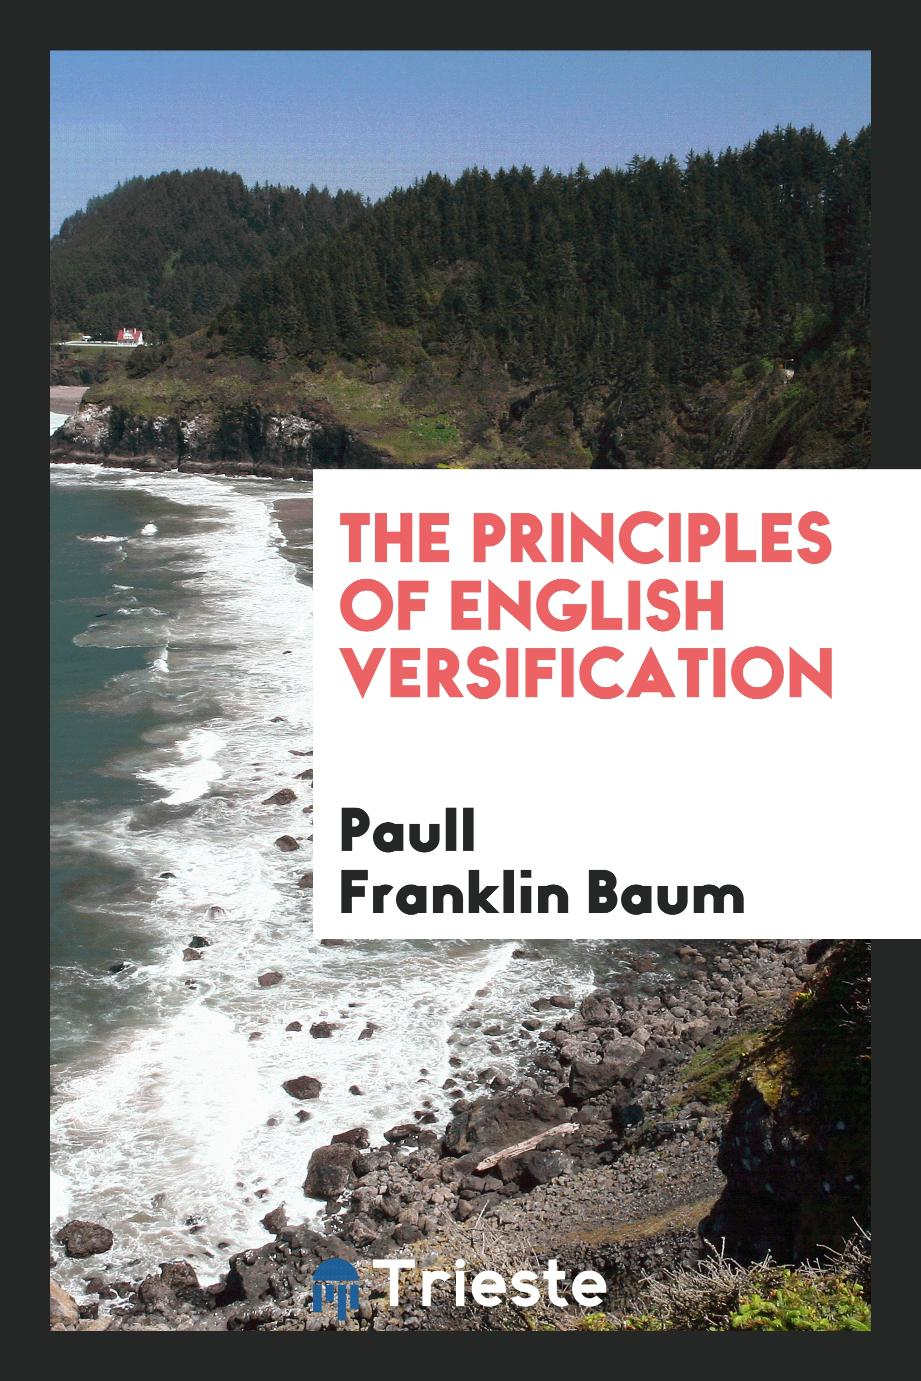 The principles of English versification